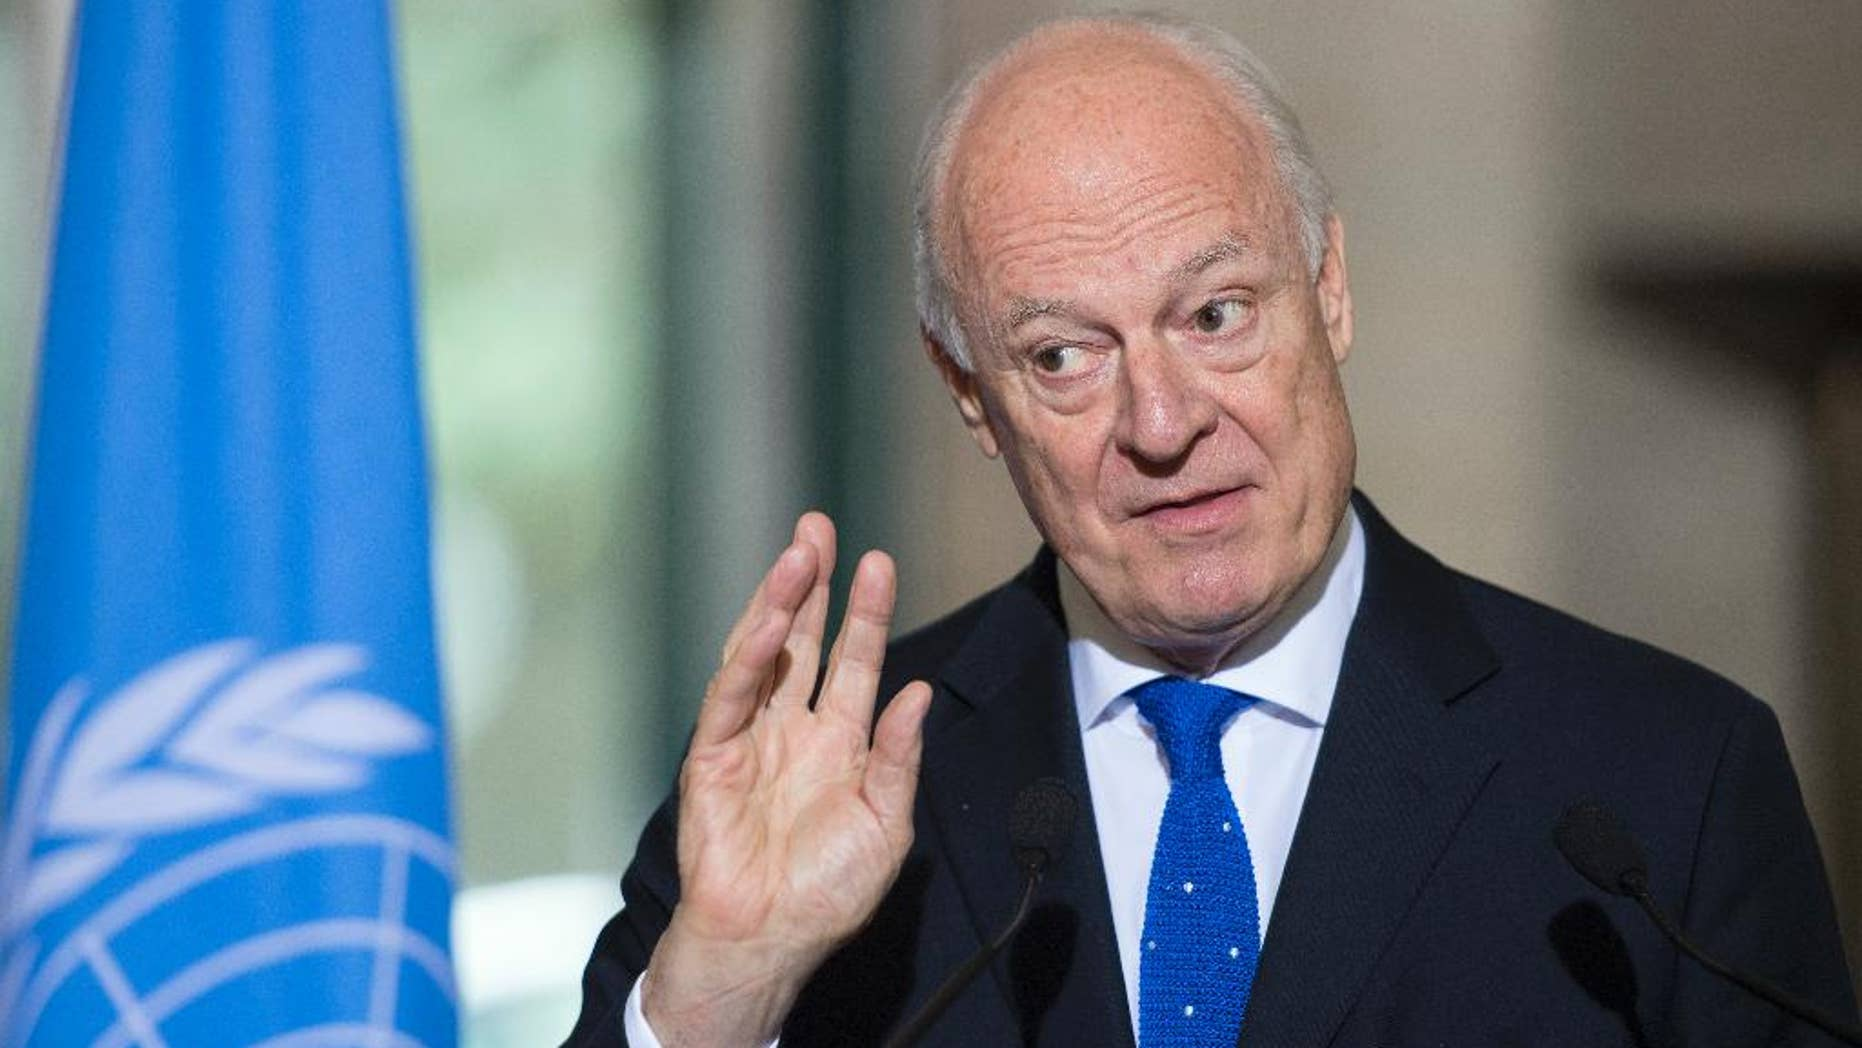 """Staffan de Mistura, UN Special Envoy for Syria, speaks during a news conference at the European headquarters of the United Nations, in Geneva, Switzerland, Thursday, May 19, 2016. De Mistura says he's waiting to see """"gestures"""" following a Vienna meeting on Syria of world and regional powers earlier this week, before setting a target date for the indirect talks between President Bashar Assad's envoys and opposition groups to resume in Geneva. (Martial Trezzini/Keystone via AP)"""